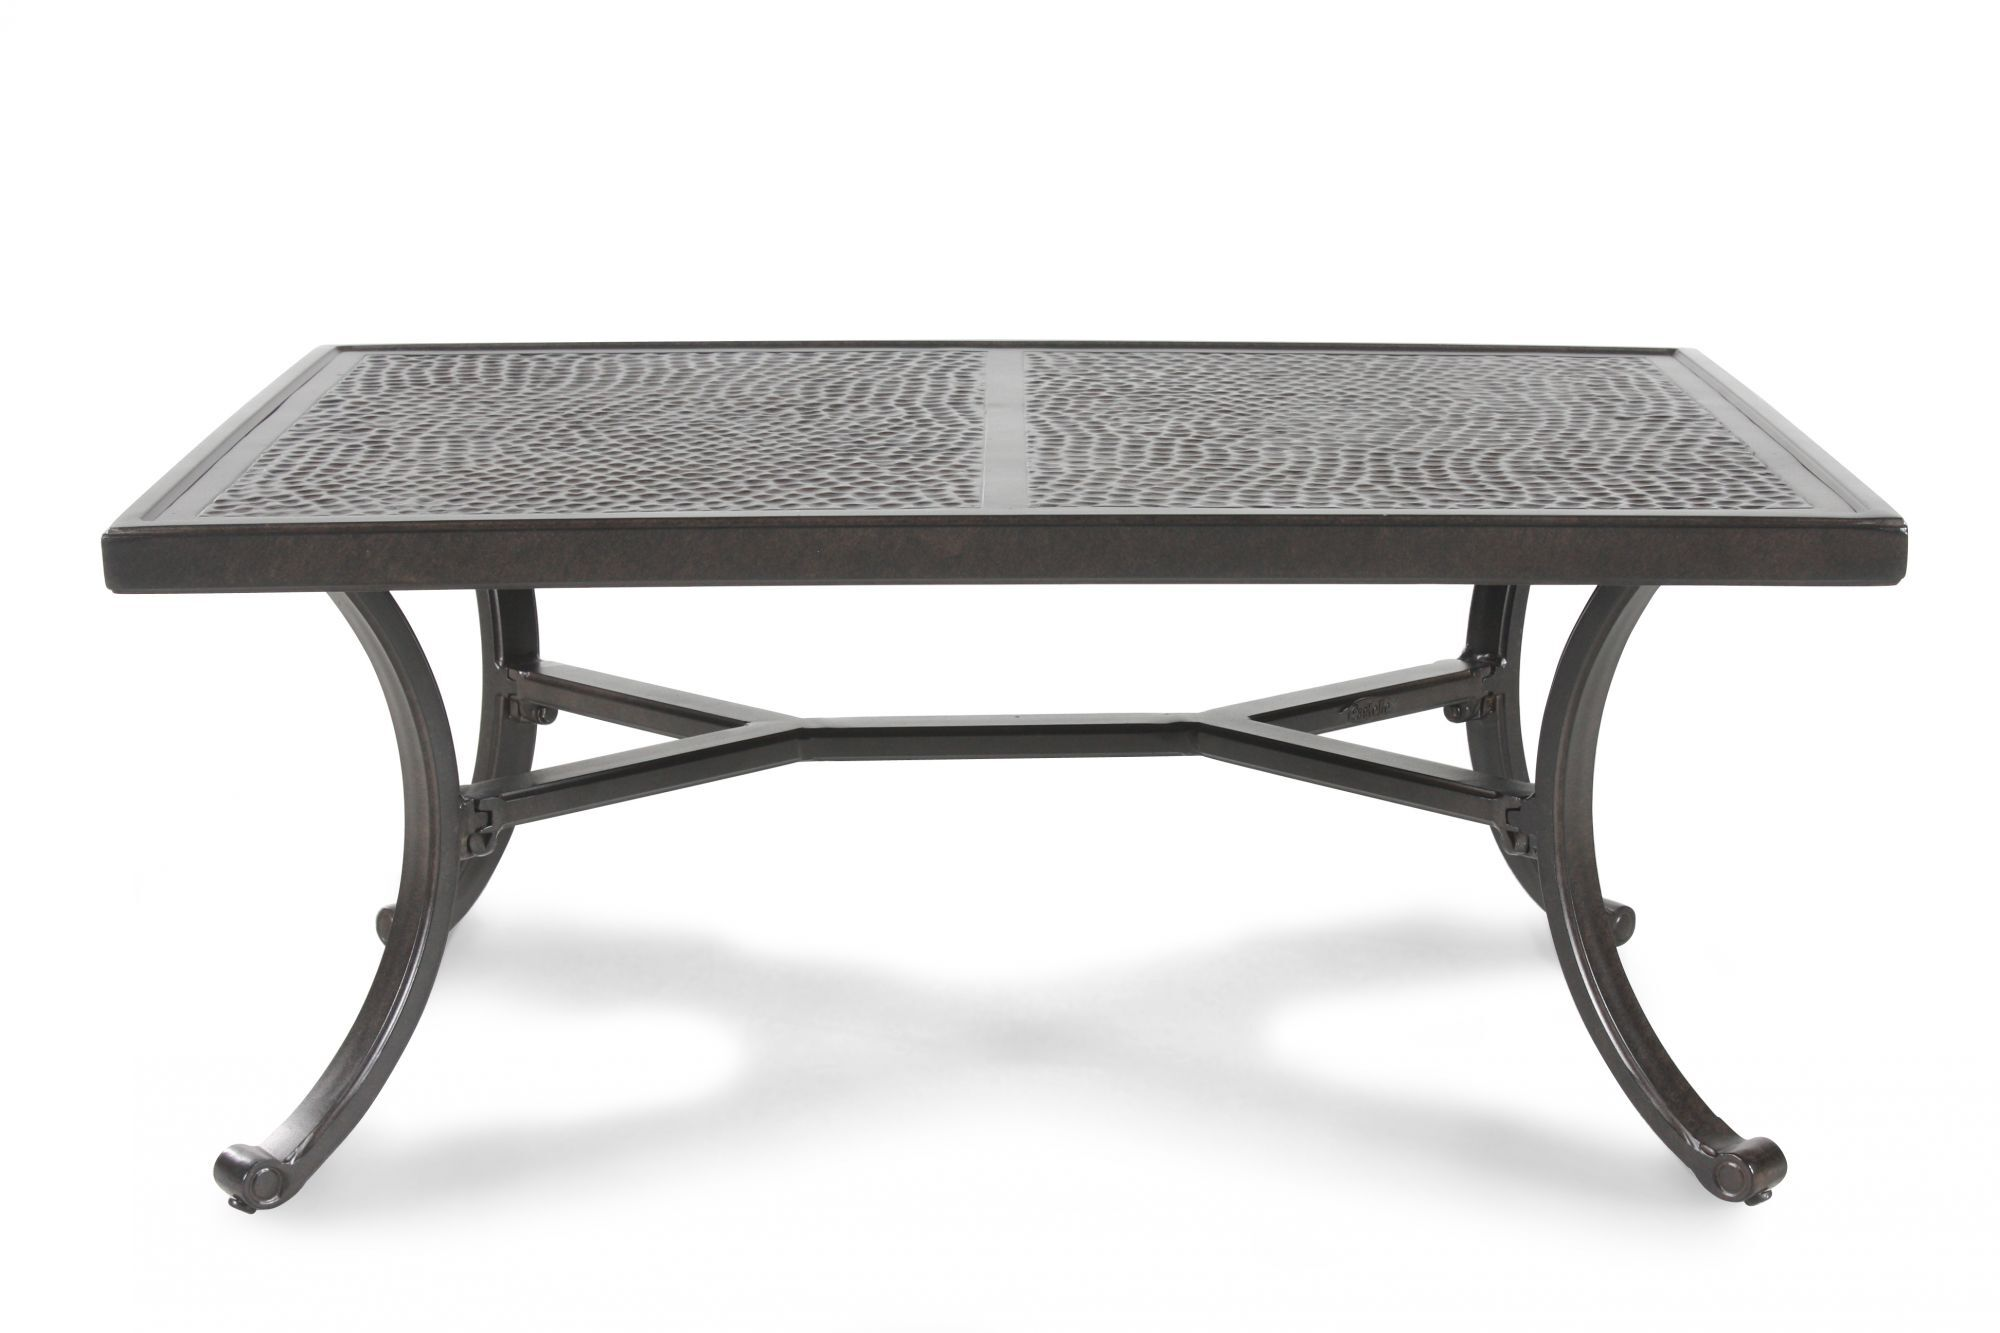 castelle vintage patio dining table